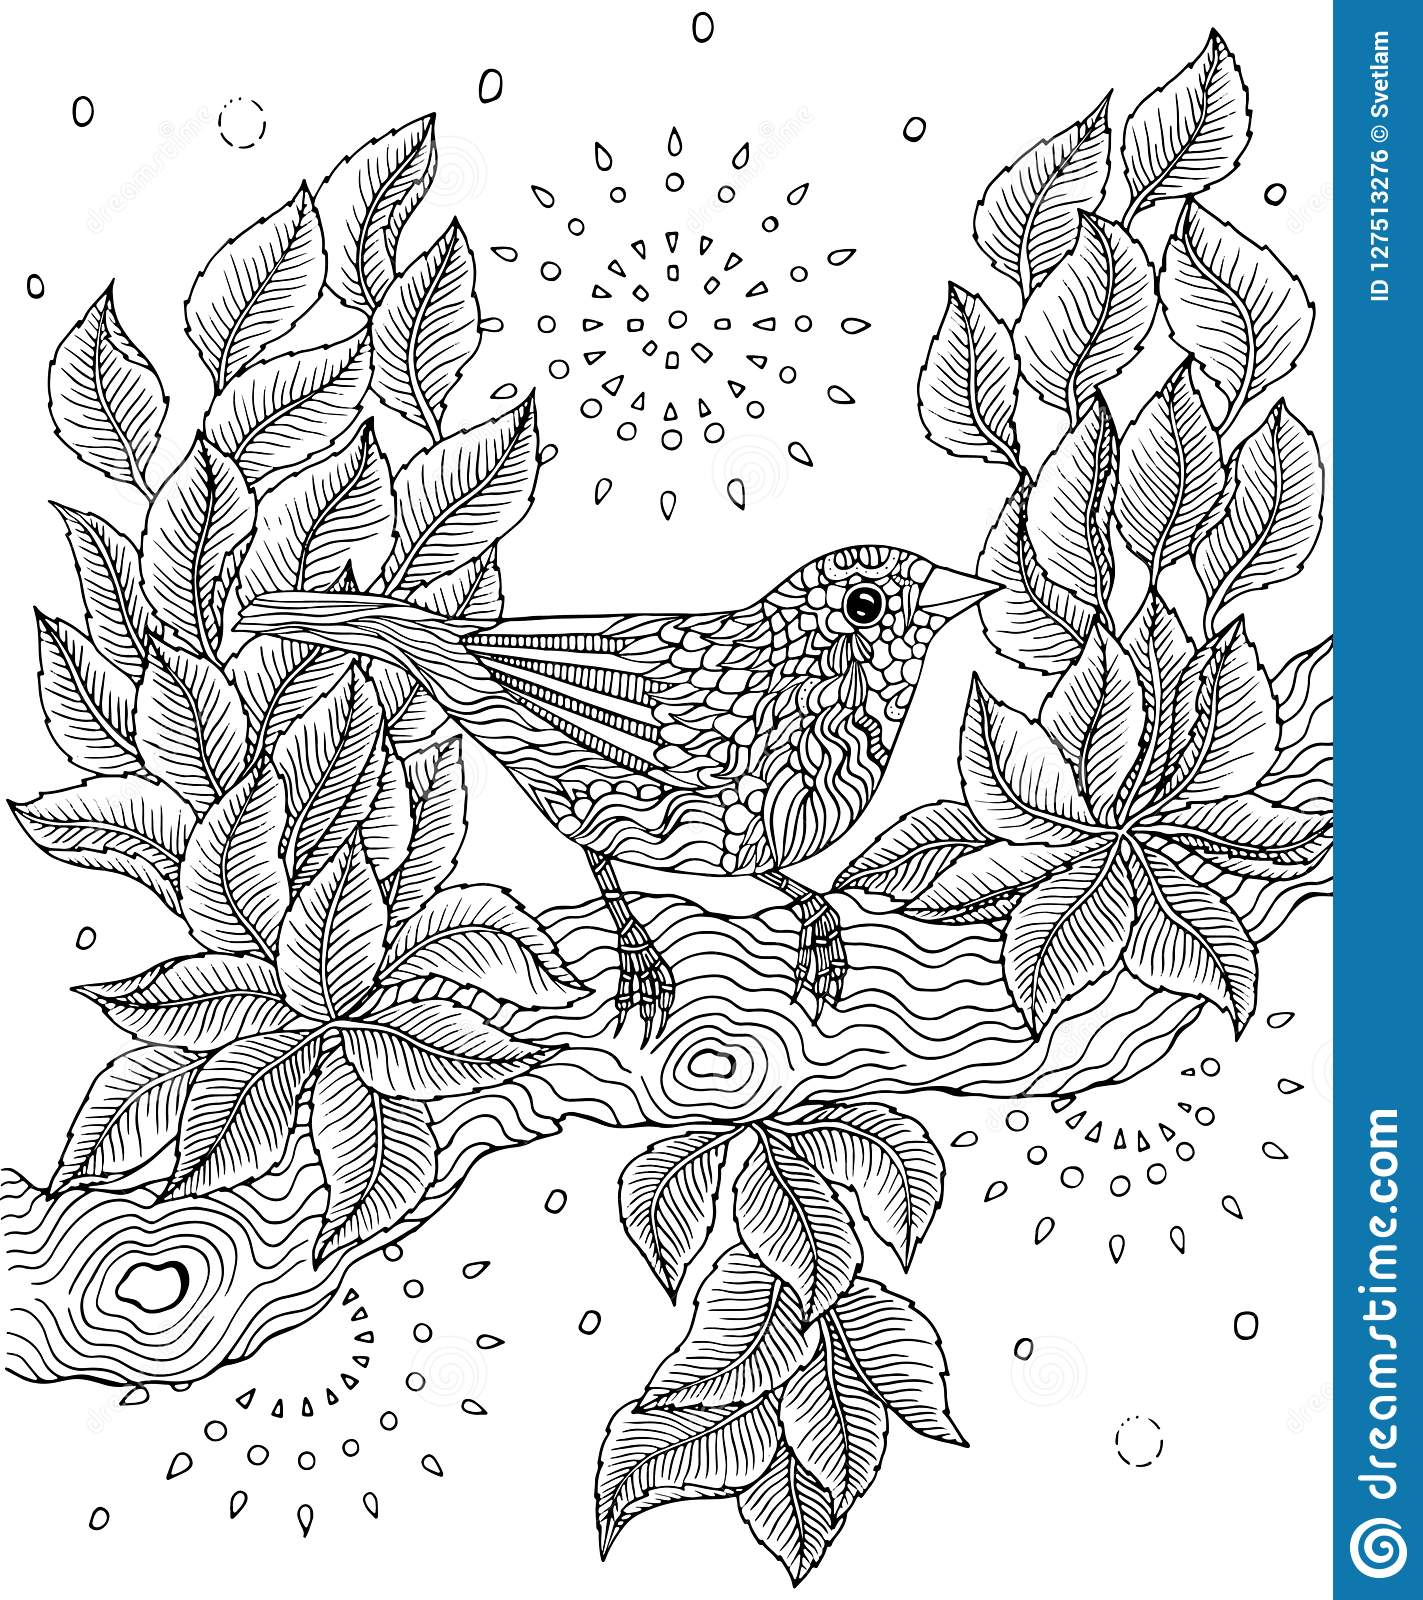 red billed fincher bird coloring page red billed fincher bird coloring page vector illustration